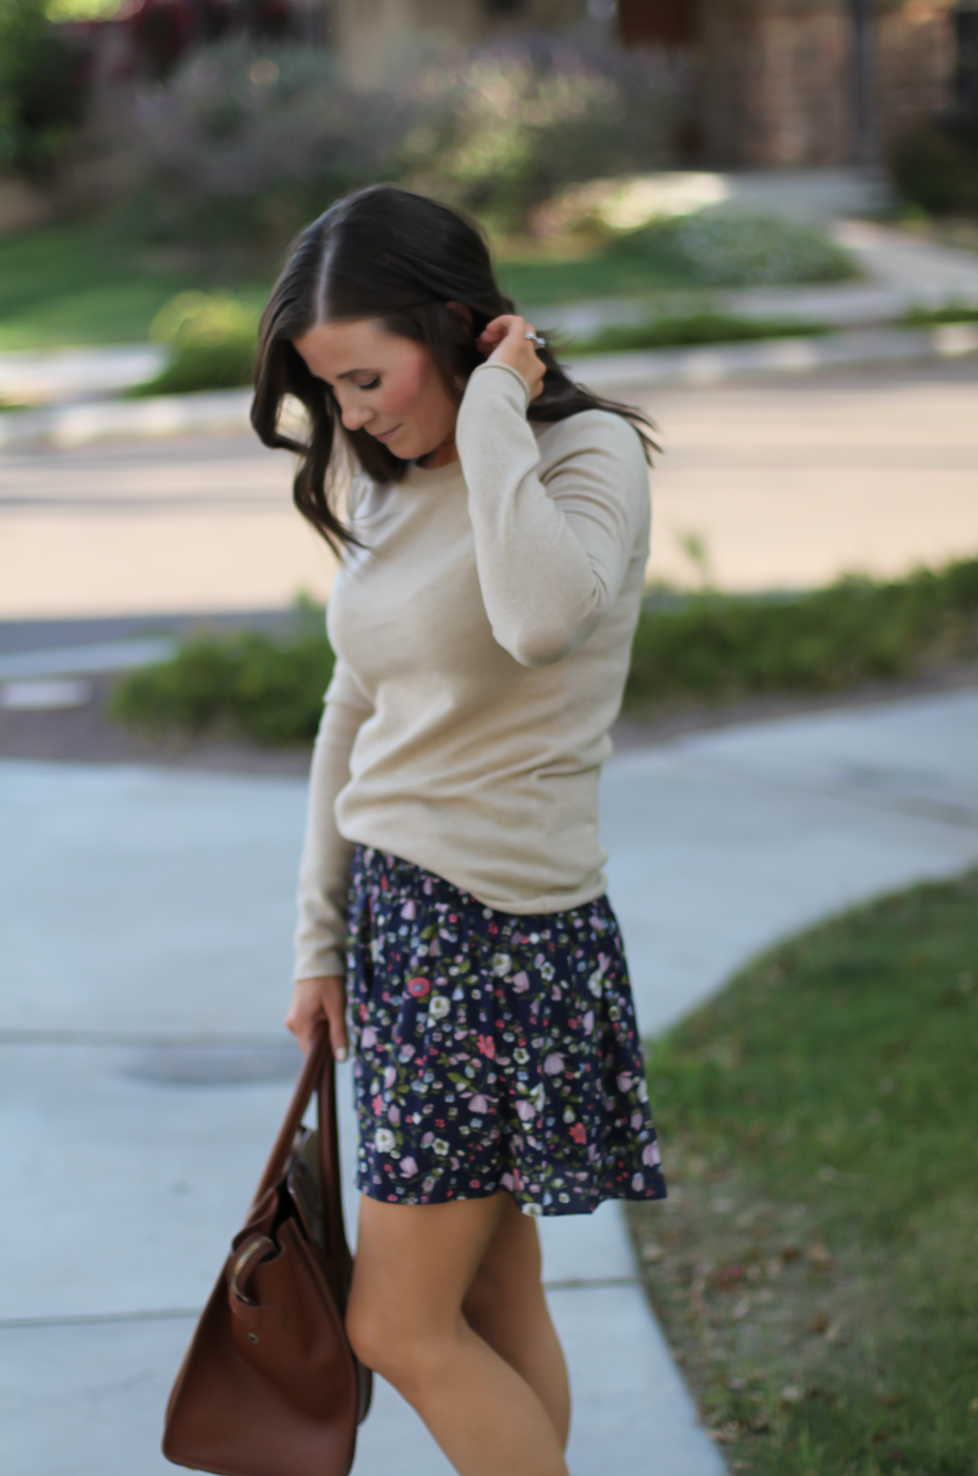 Navy Floral Shorts, Tan Cashmere Sweater, Brown Gladiator Sandals, Brown Leather Tote, Rebecca Taylor, J.Crew, Candies, Celine 8